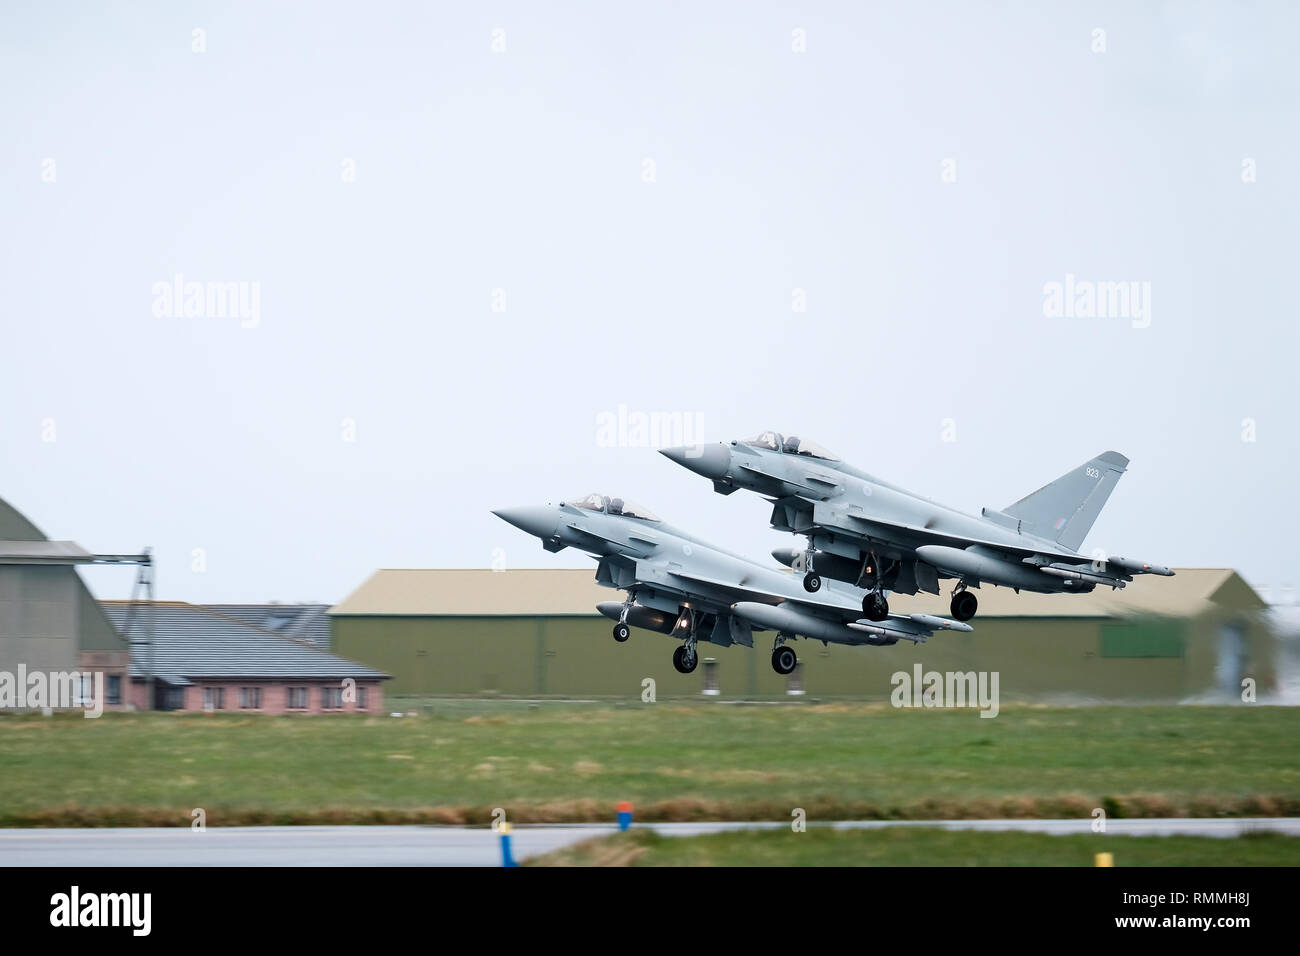 Two RAF Tornado jet fighters taking off in tandem at RAF Lossiemouth base, Moray, Scotland - Stock Image